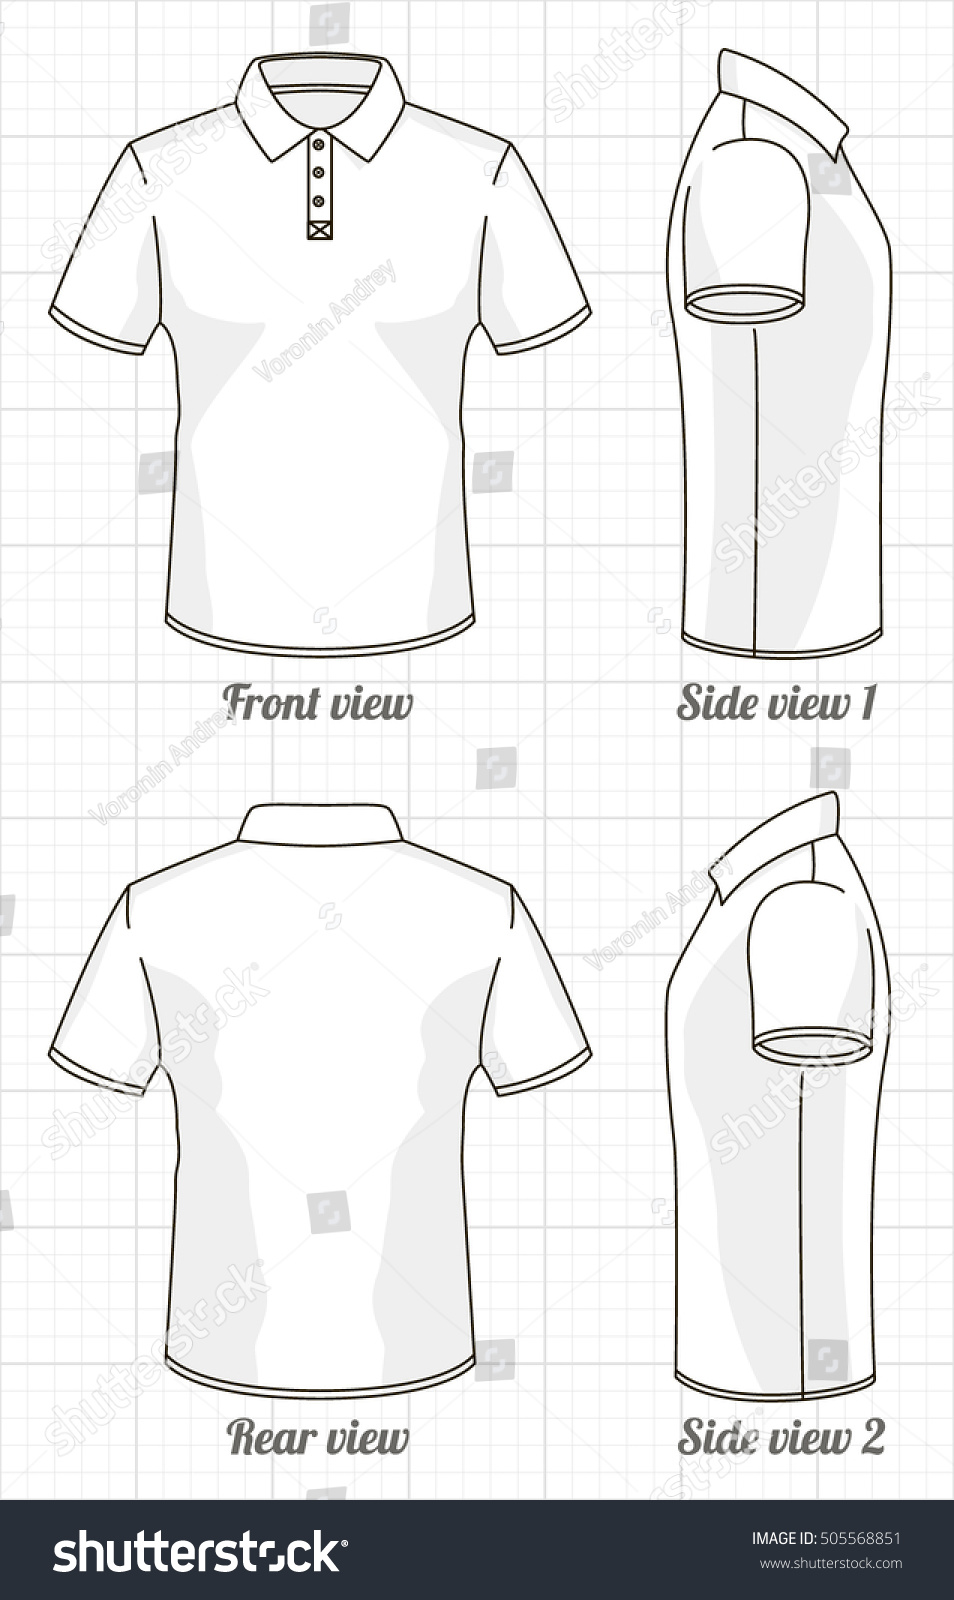 White t shirt eps - T Shirt Polo Template Set Front Side Back View Vector Eps